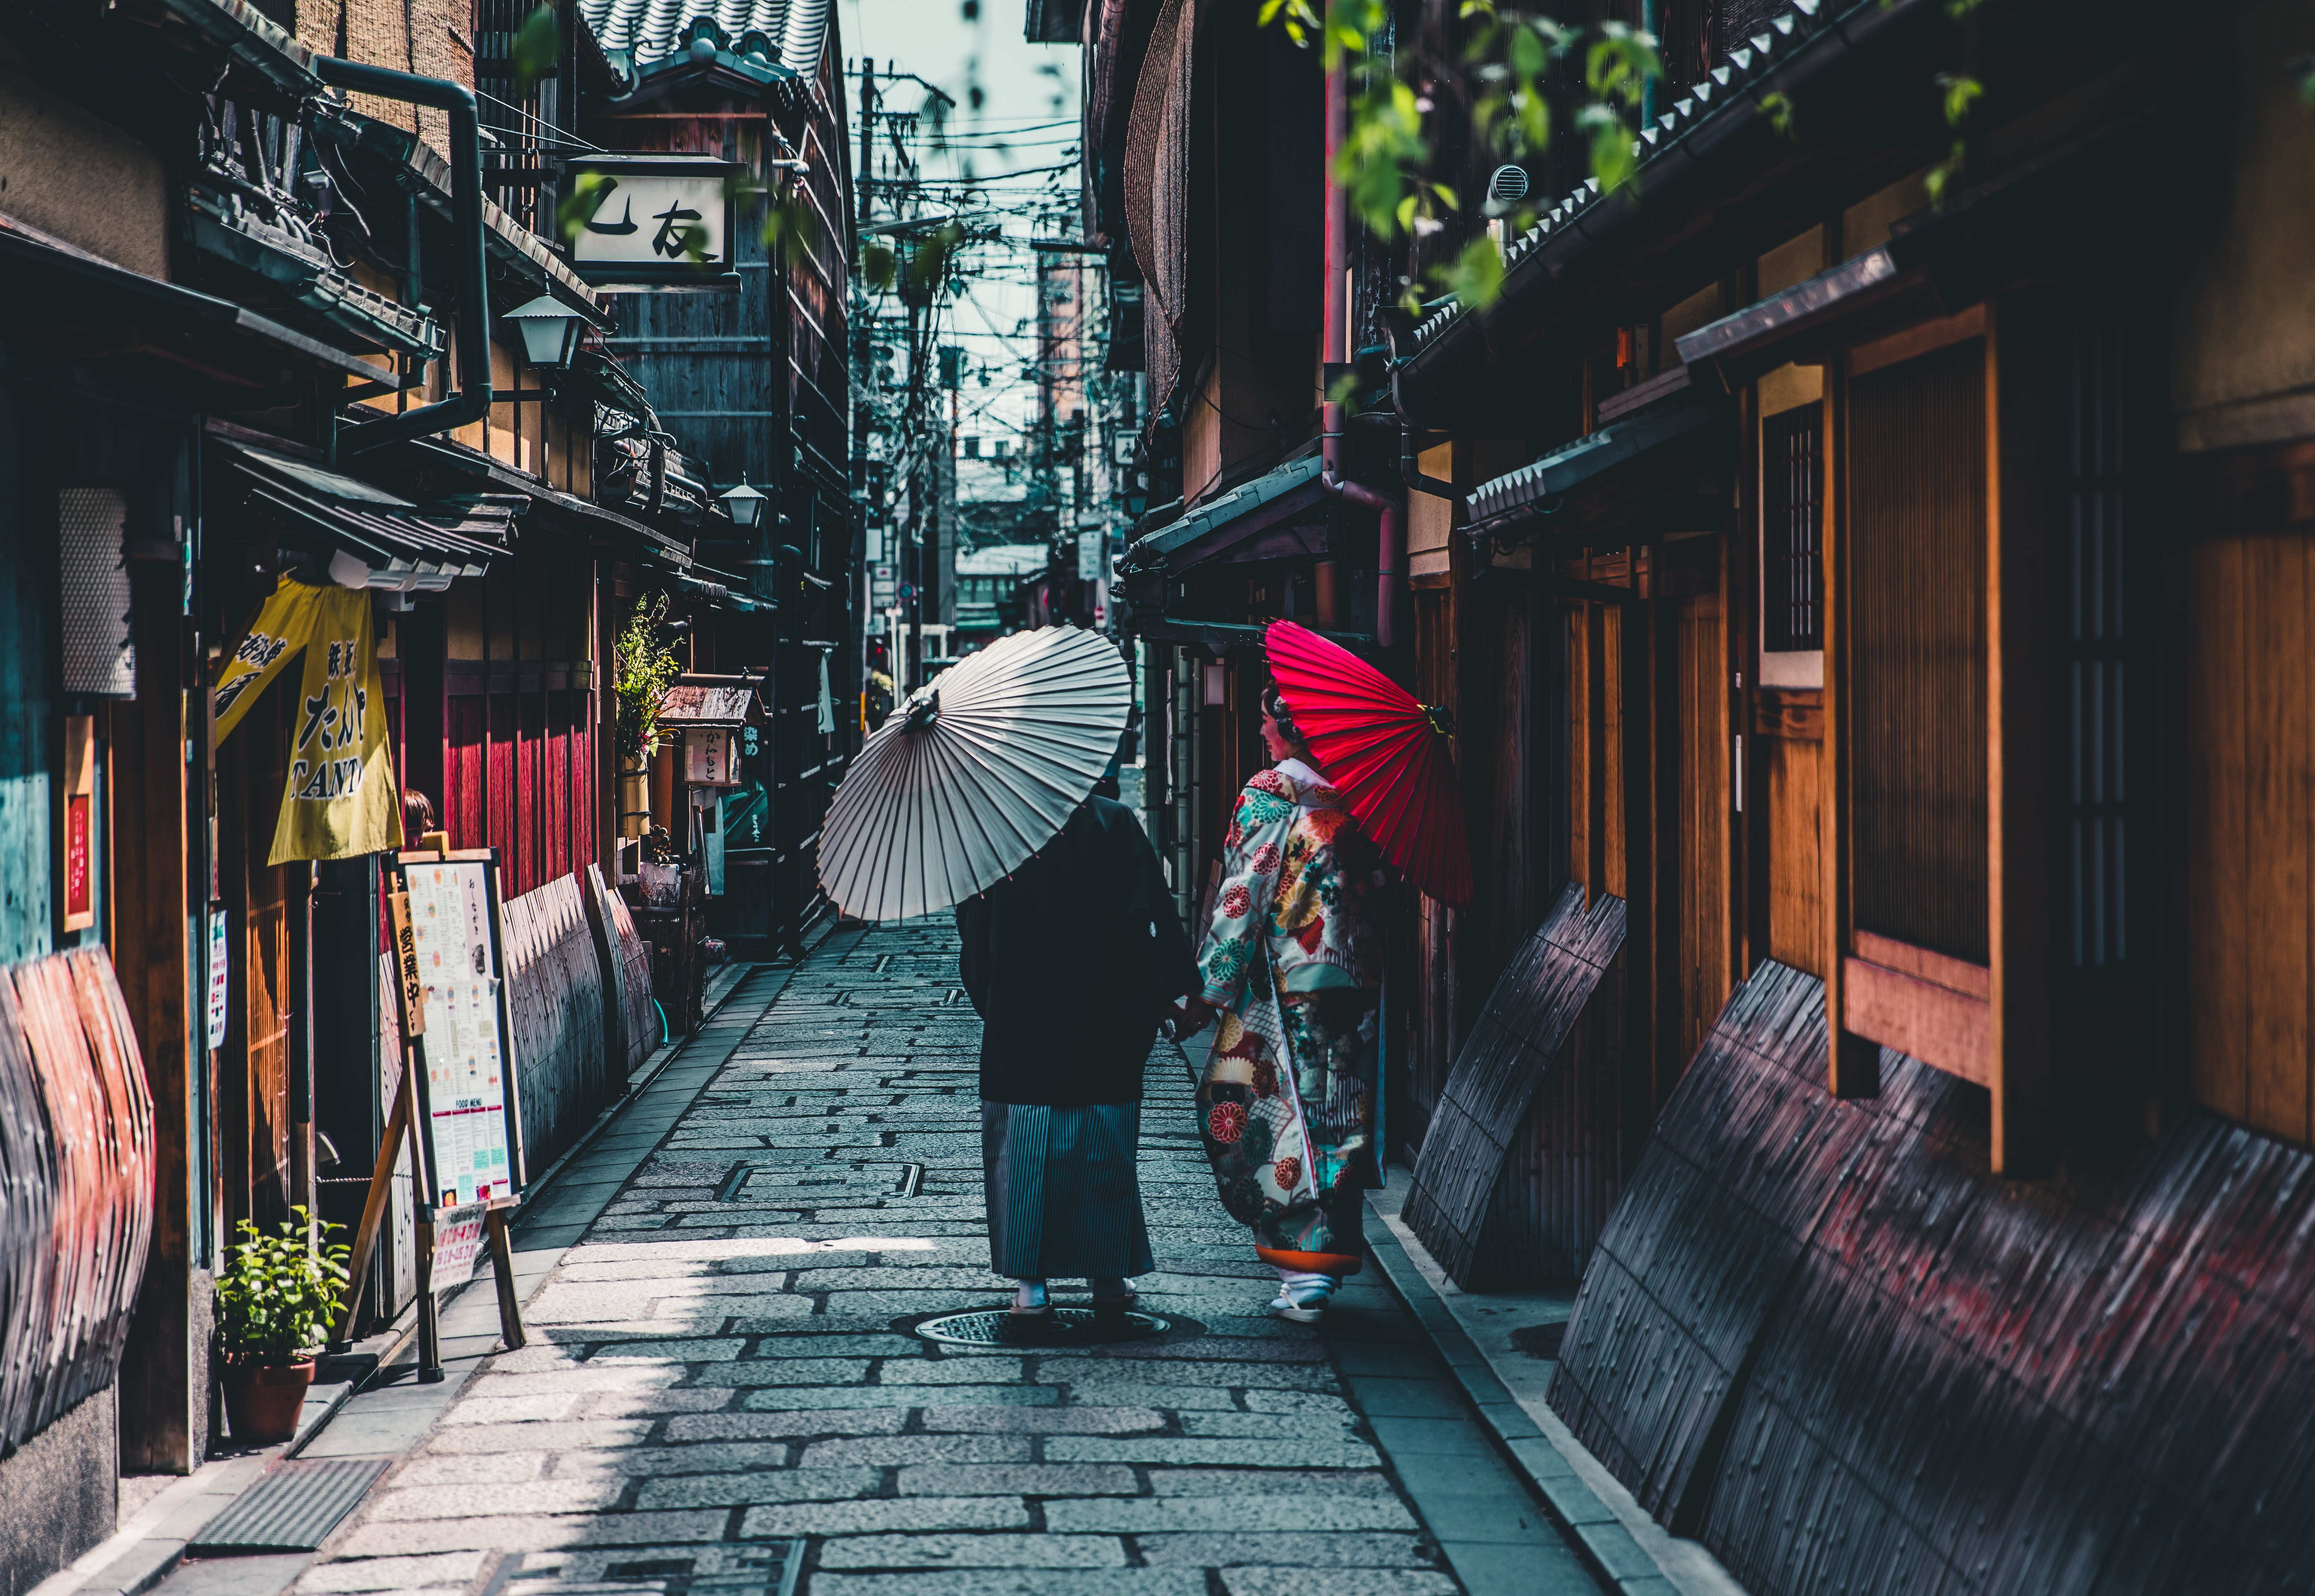 Two women with umbrellas walking down the alley in Kyoto.